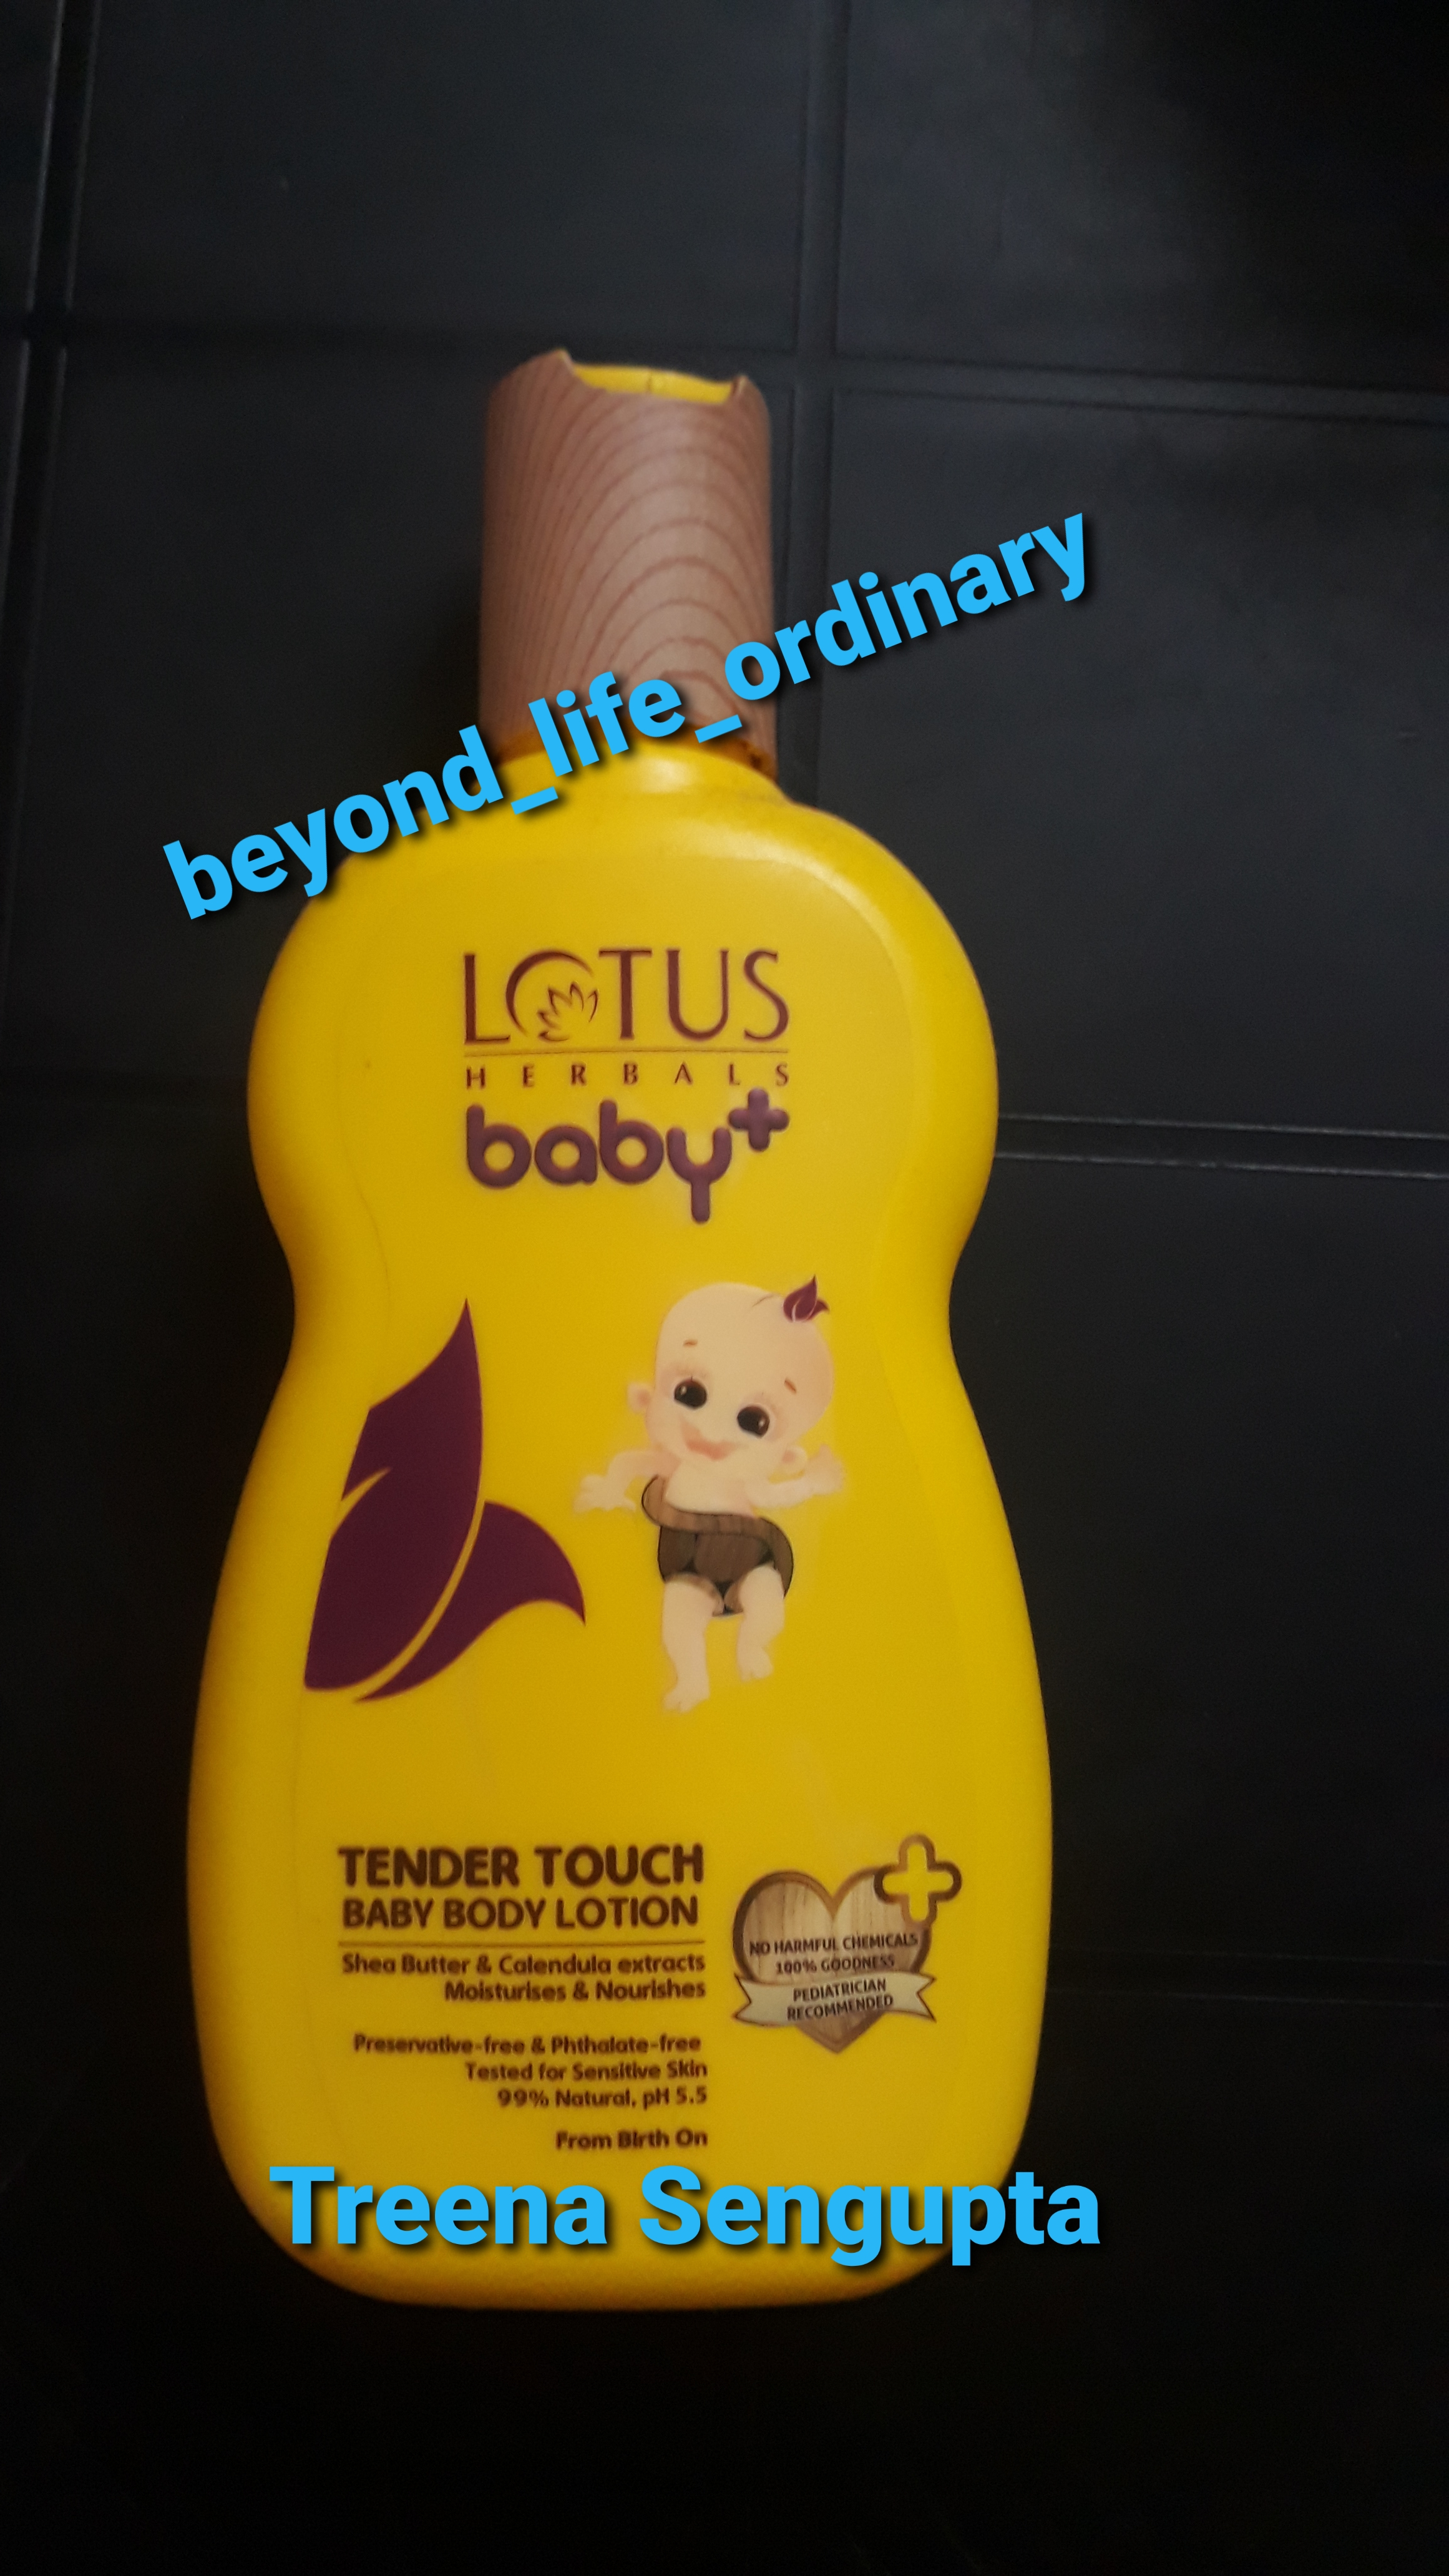 Lotus Herbals baby+ Tender Touch Baby Body Lotion-Nice product-By treena123